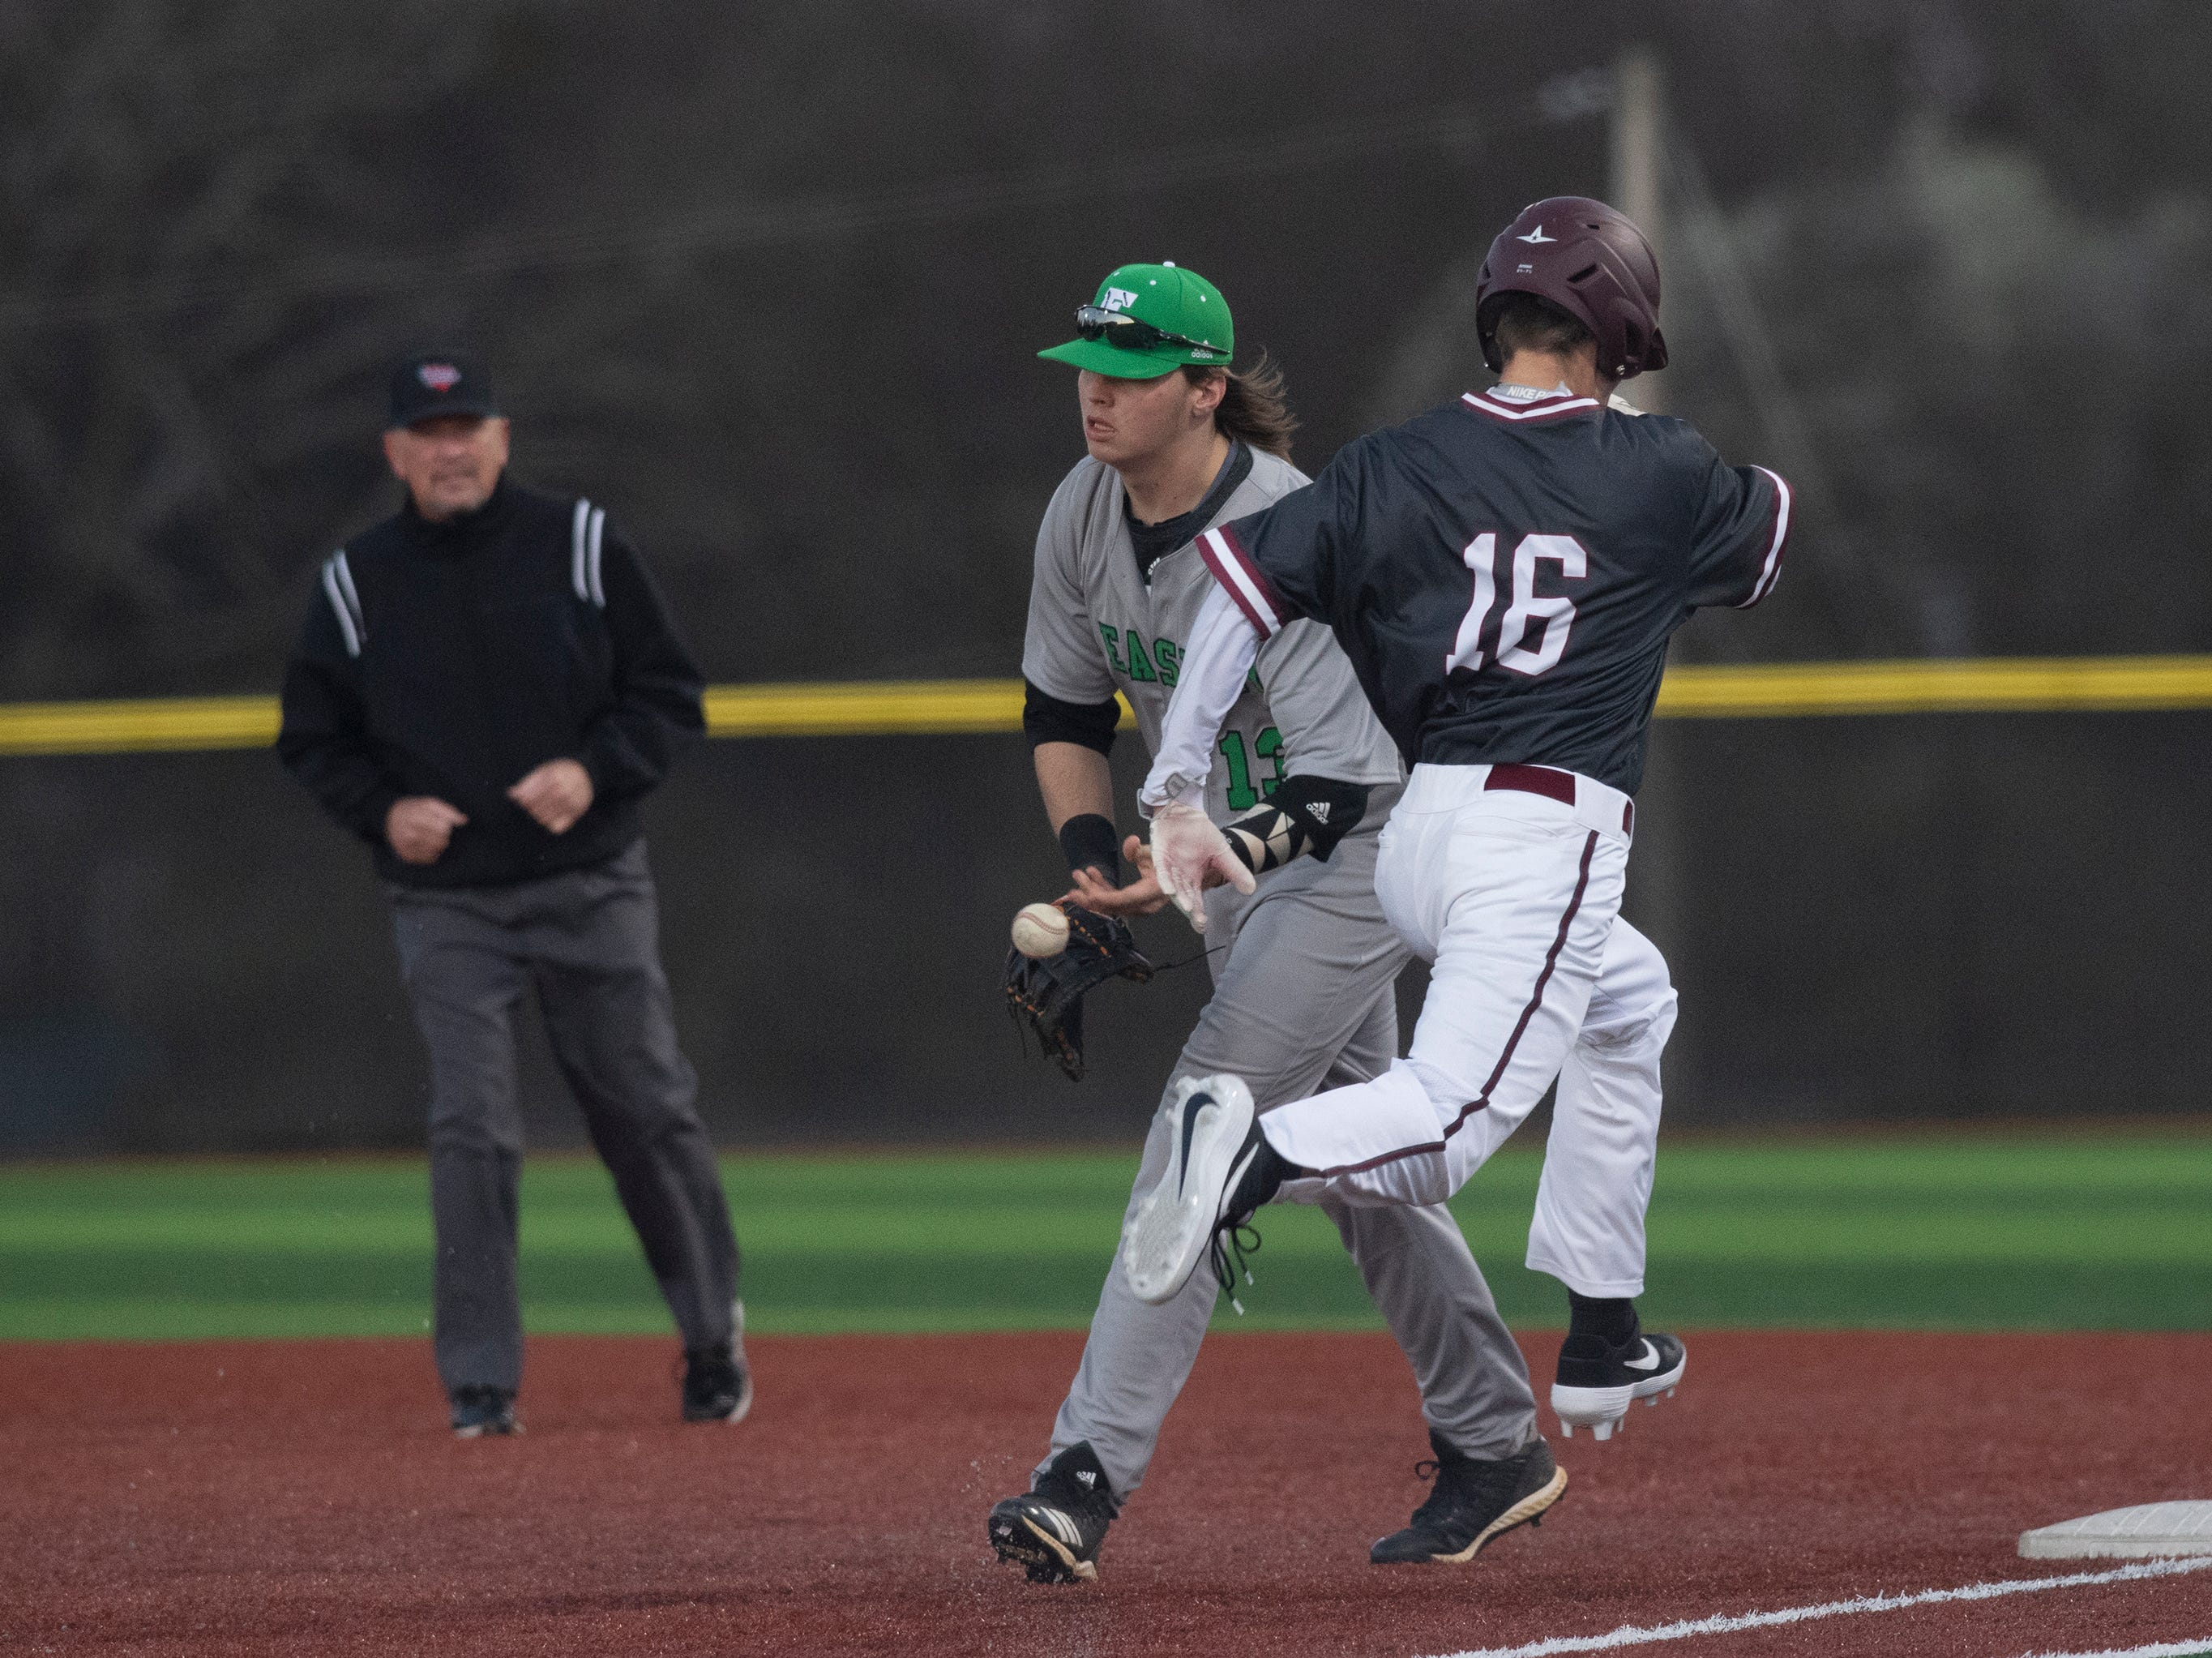 Easley High School's Stokes O'Shields (13) throws the ball after forcing Westside High School's Eli Morrison (16) out and ending the inning at Westside High School Tuesday, Mar. 5, 2019.